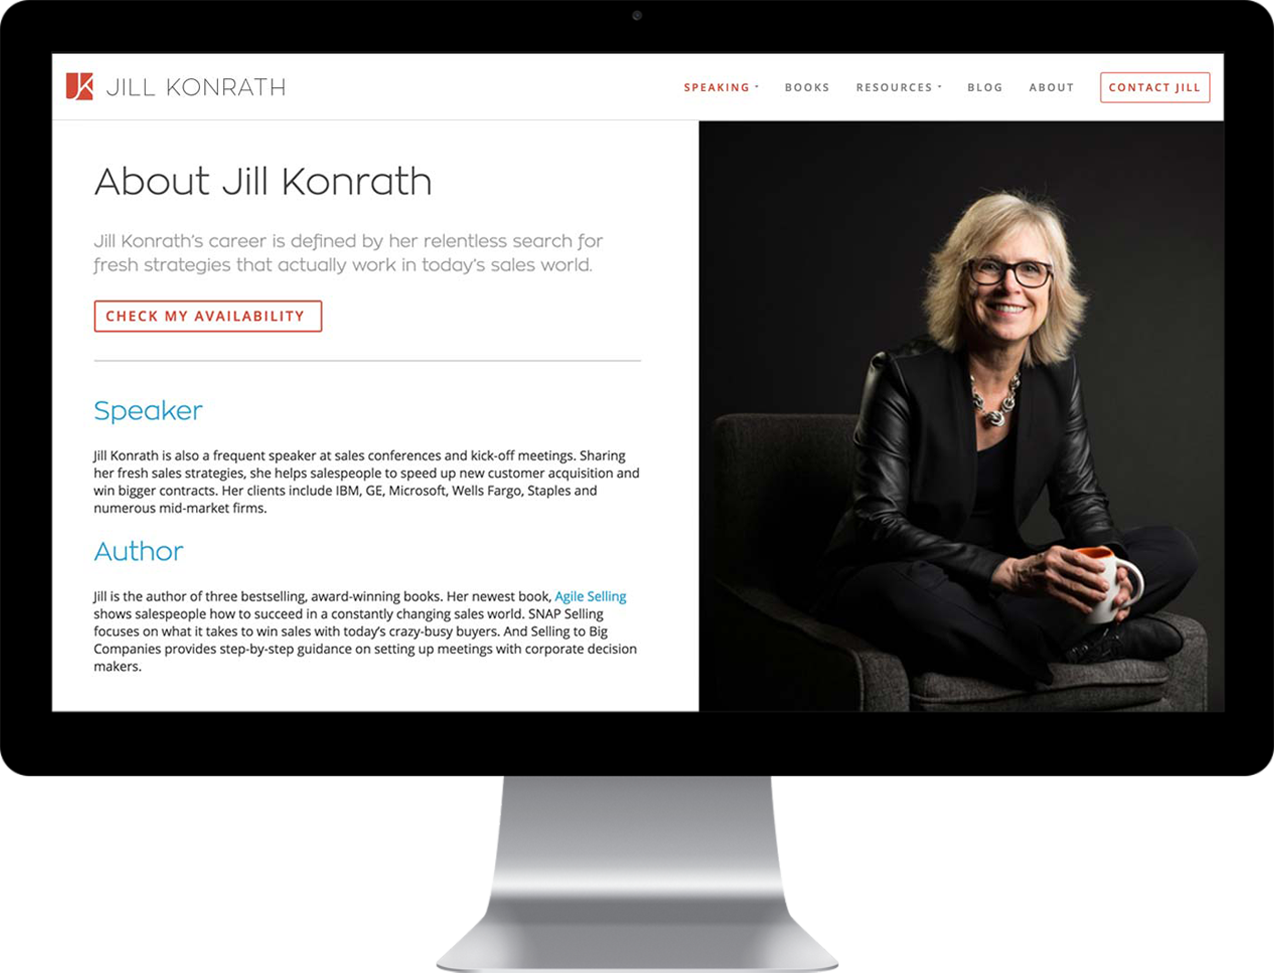 Jill Konrath custom about page design example on a desktop monitor